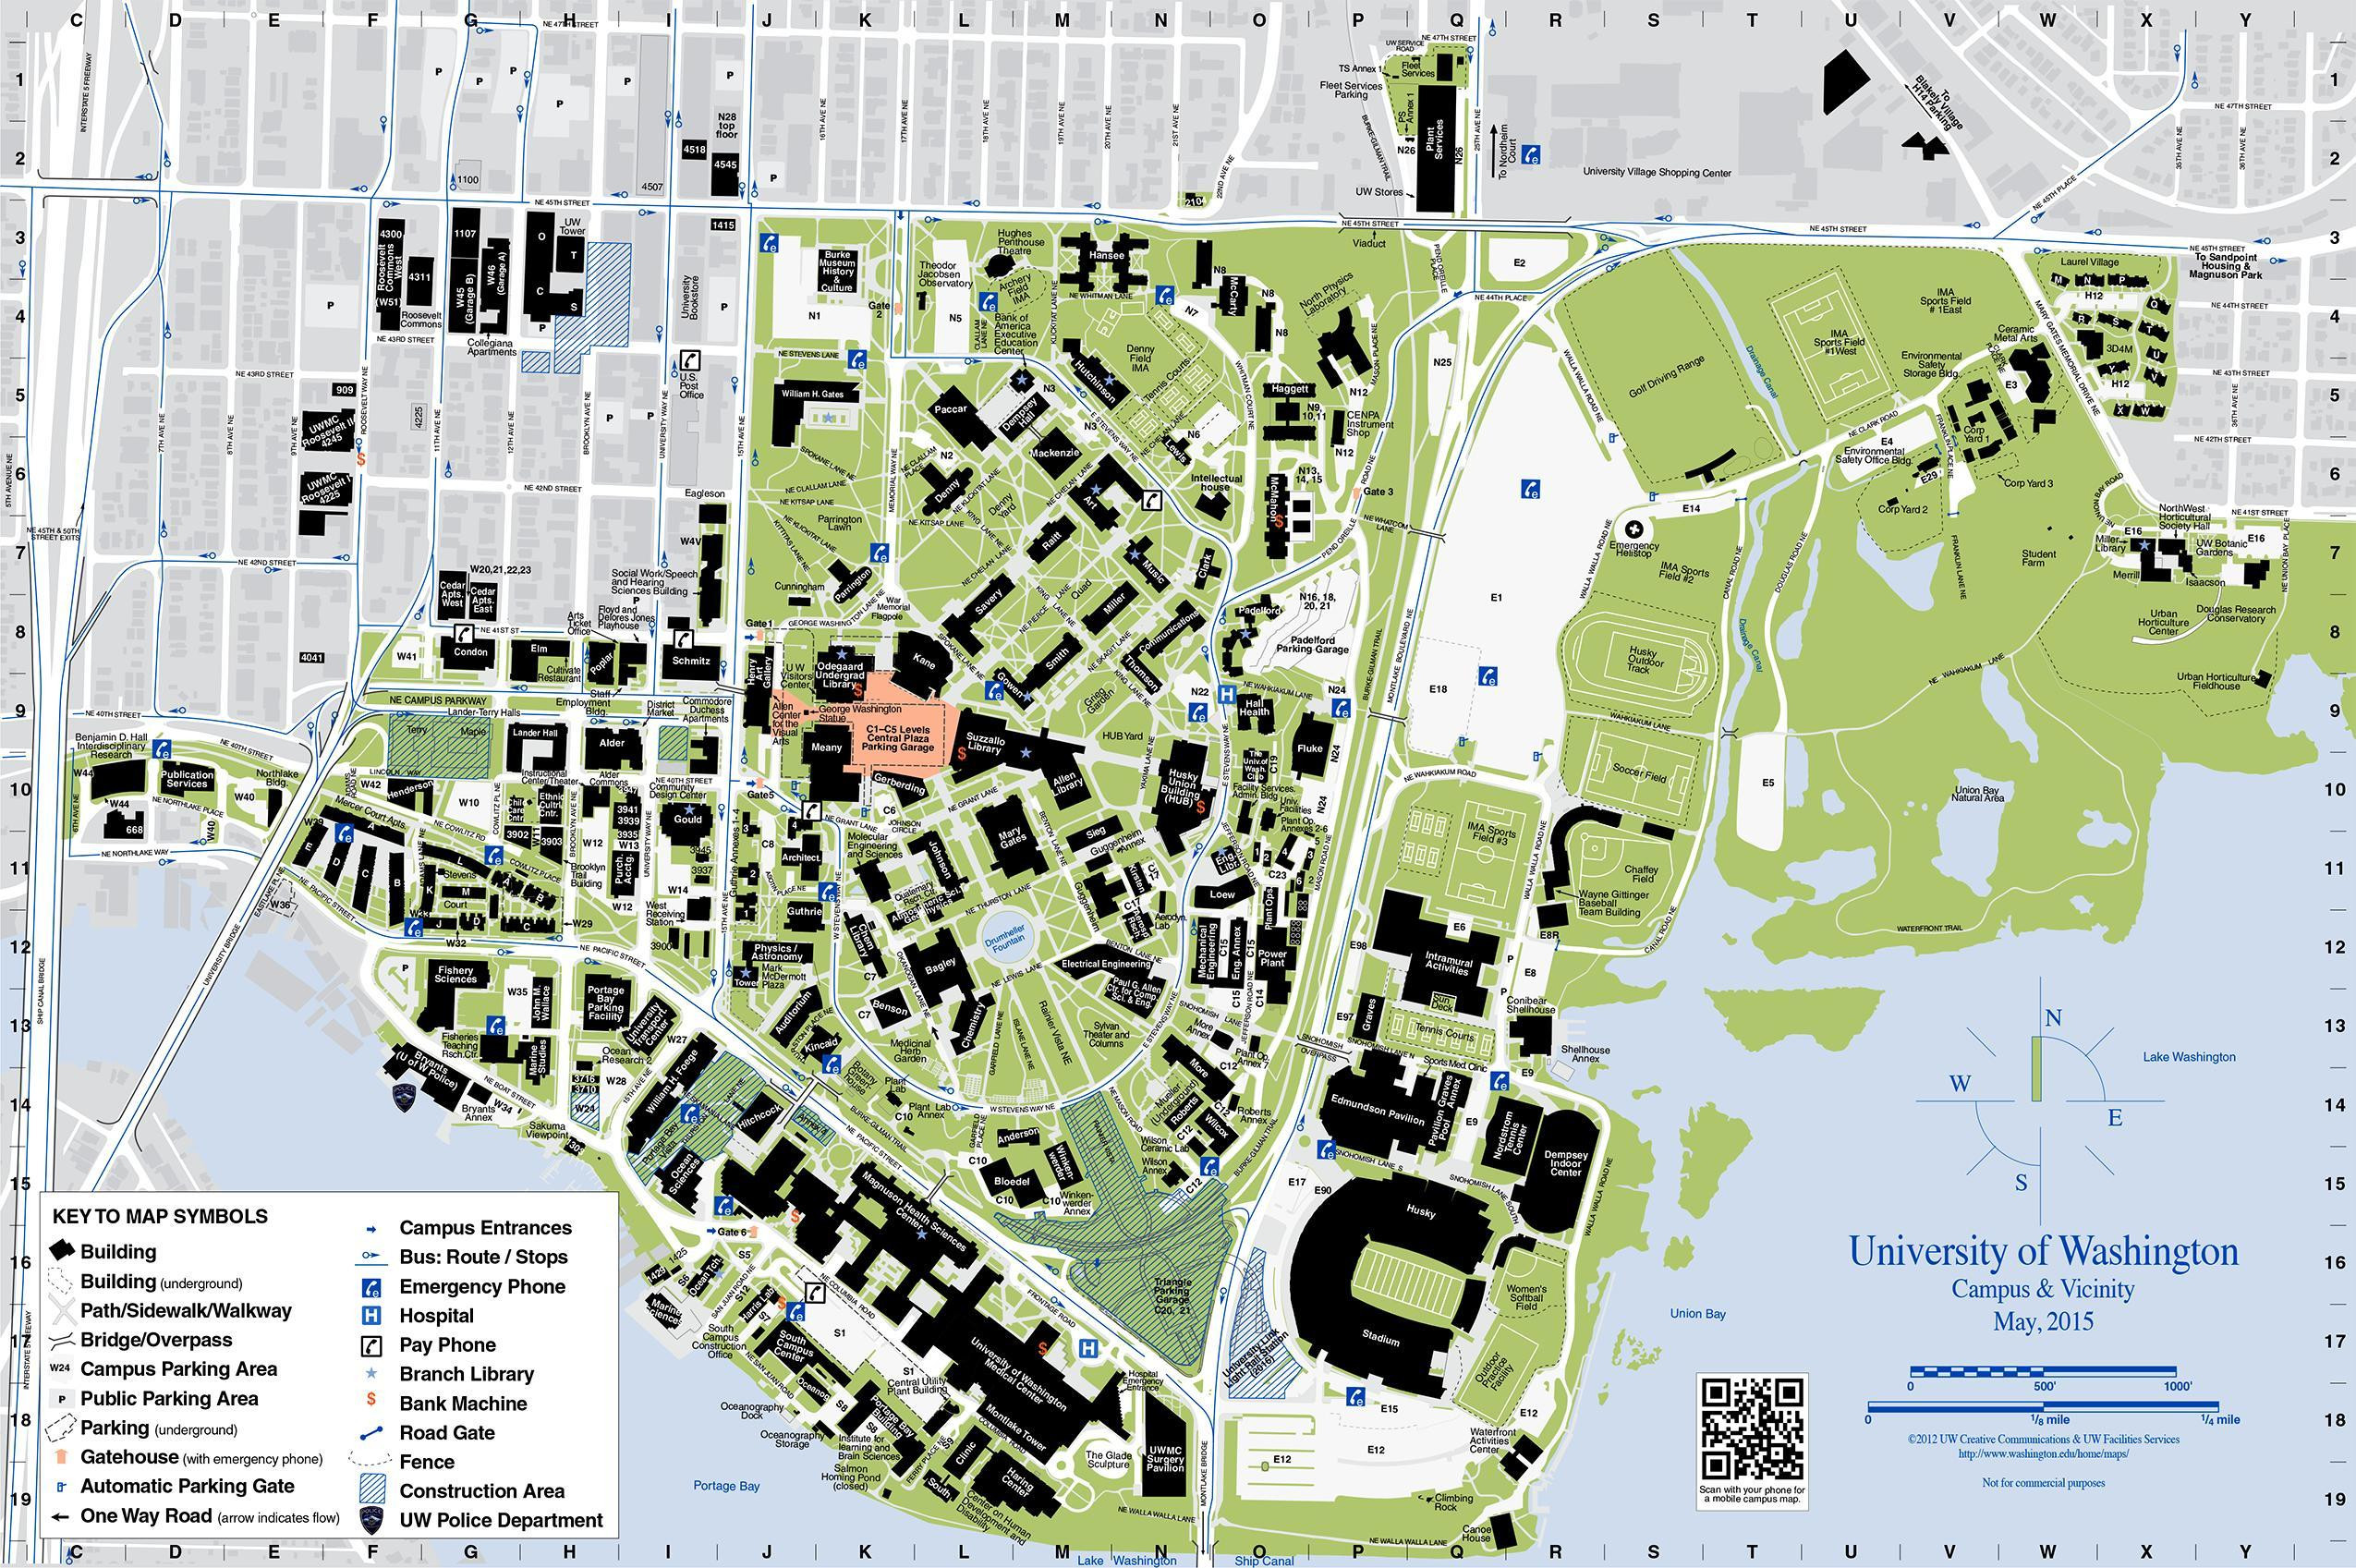 fullsize bowling green state university main campus map random bgsu campus map College of Central Florida Citrus Campus Map Citrus Campus Map Beautiful